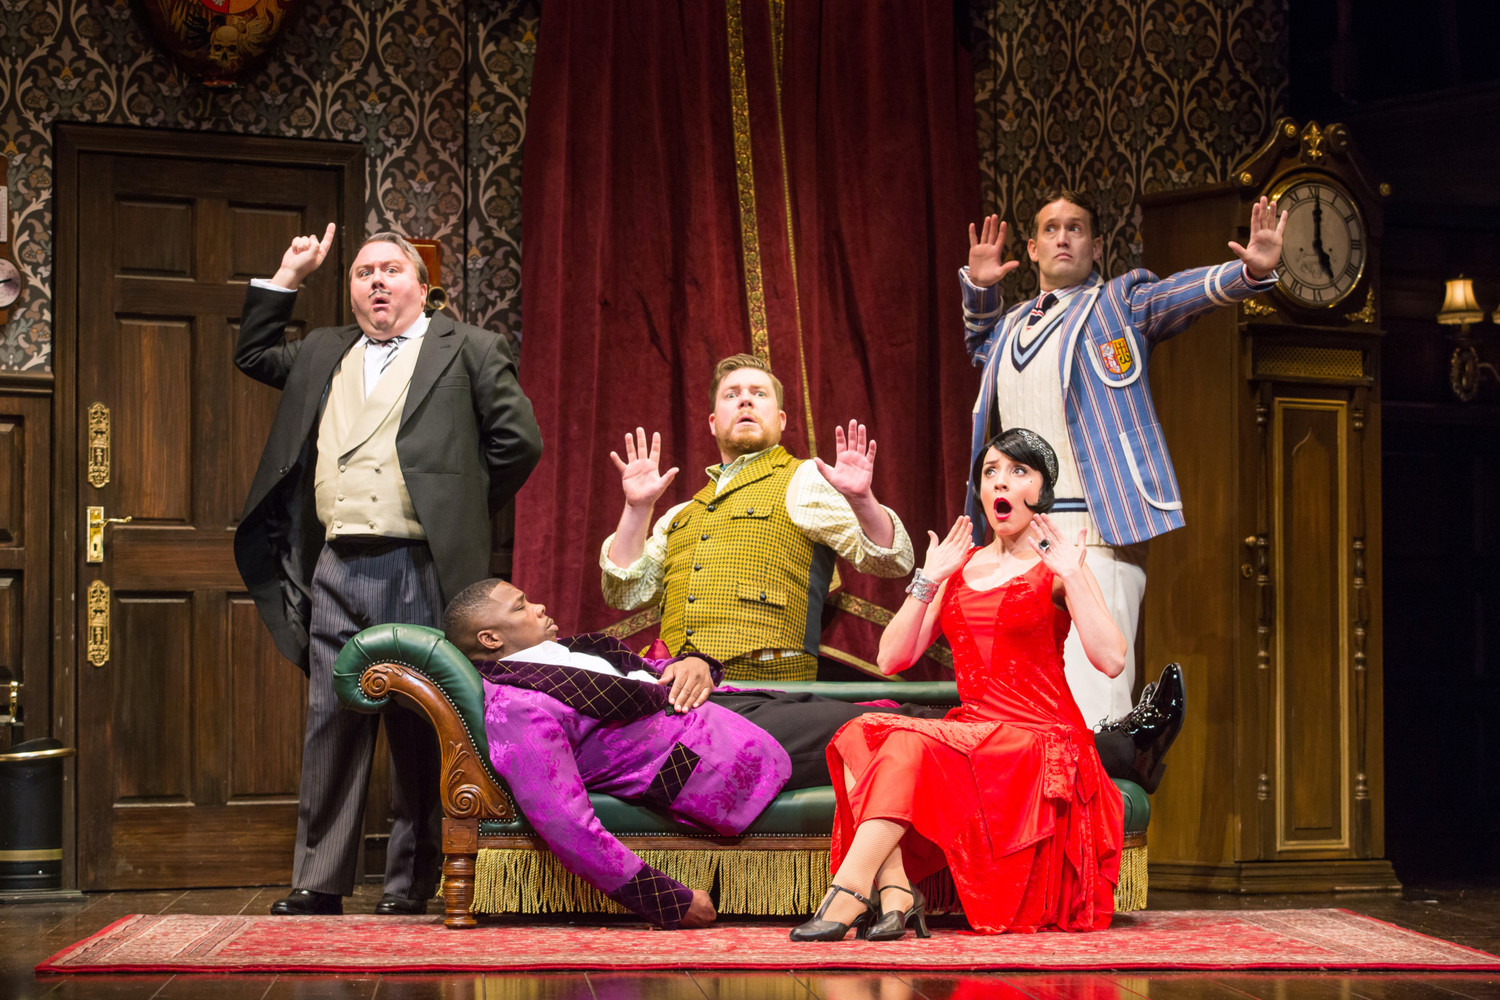 BWW Review: THE PLAY THAT GOES WRONG at Mirvish is Outrageously Fun